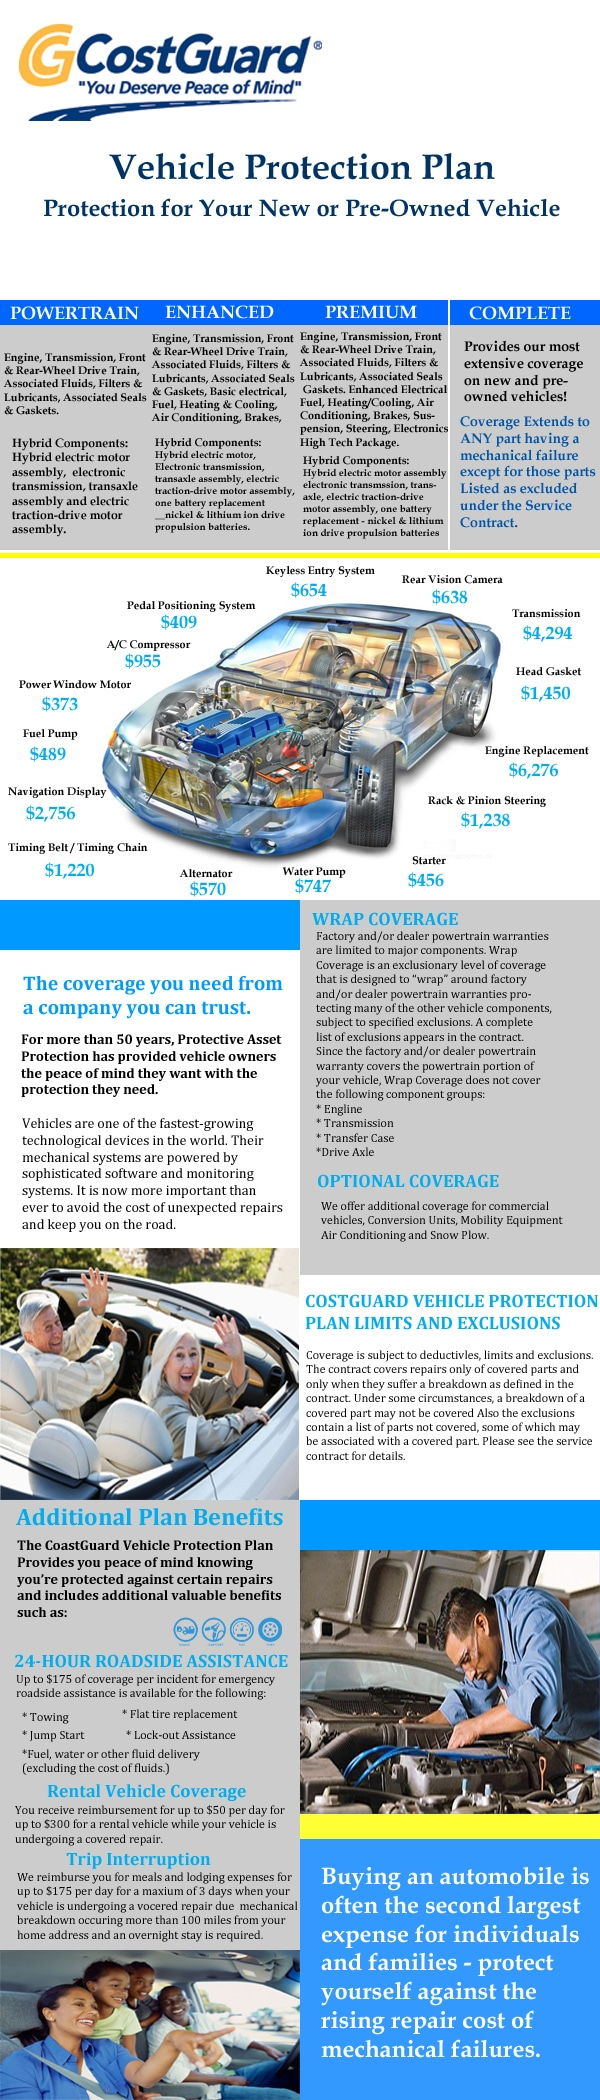 CostGuard vehicle protection